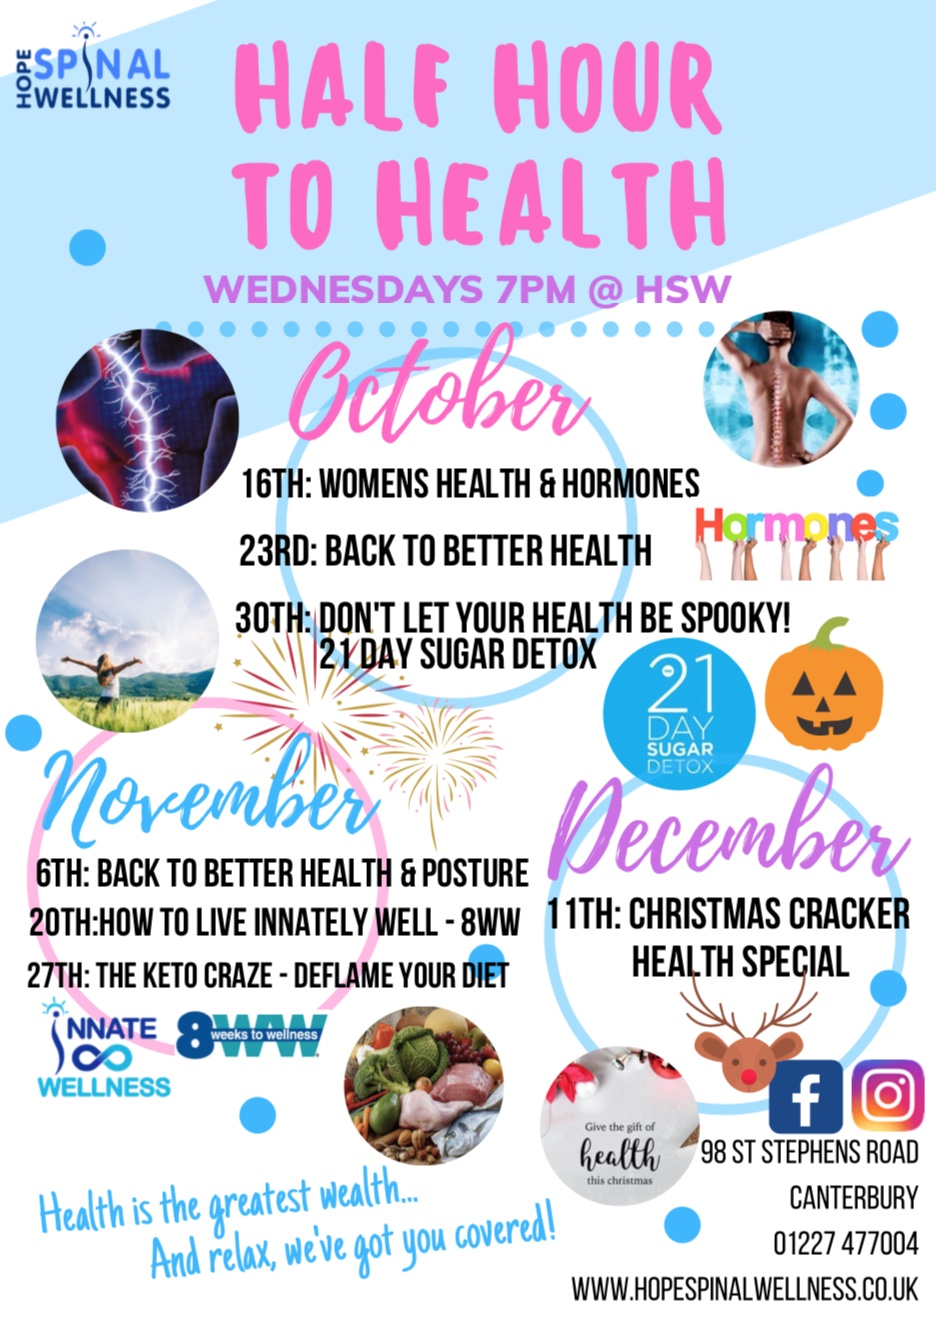 Workshop Calendar - Join us for our Wednesday workshops to learn how to live Innately Well and optimise your Health!